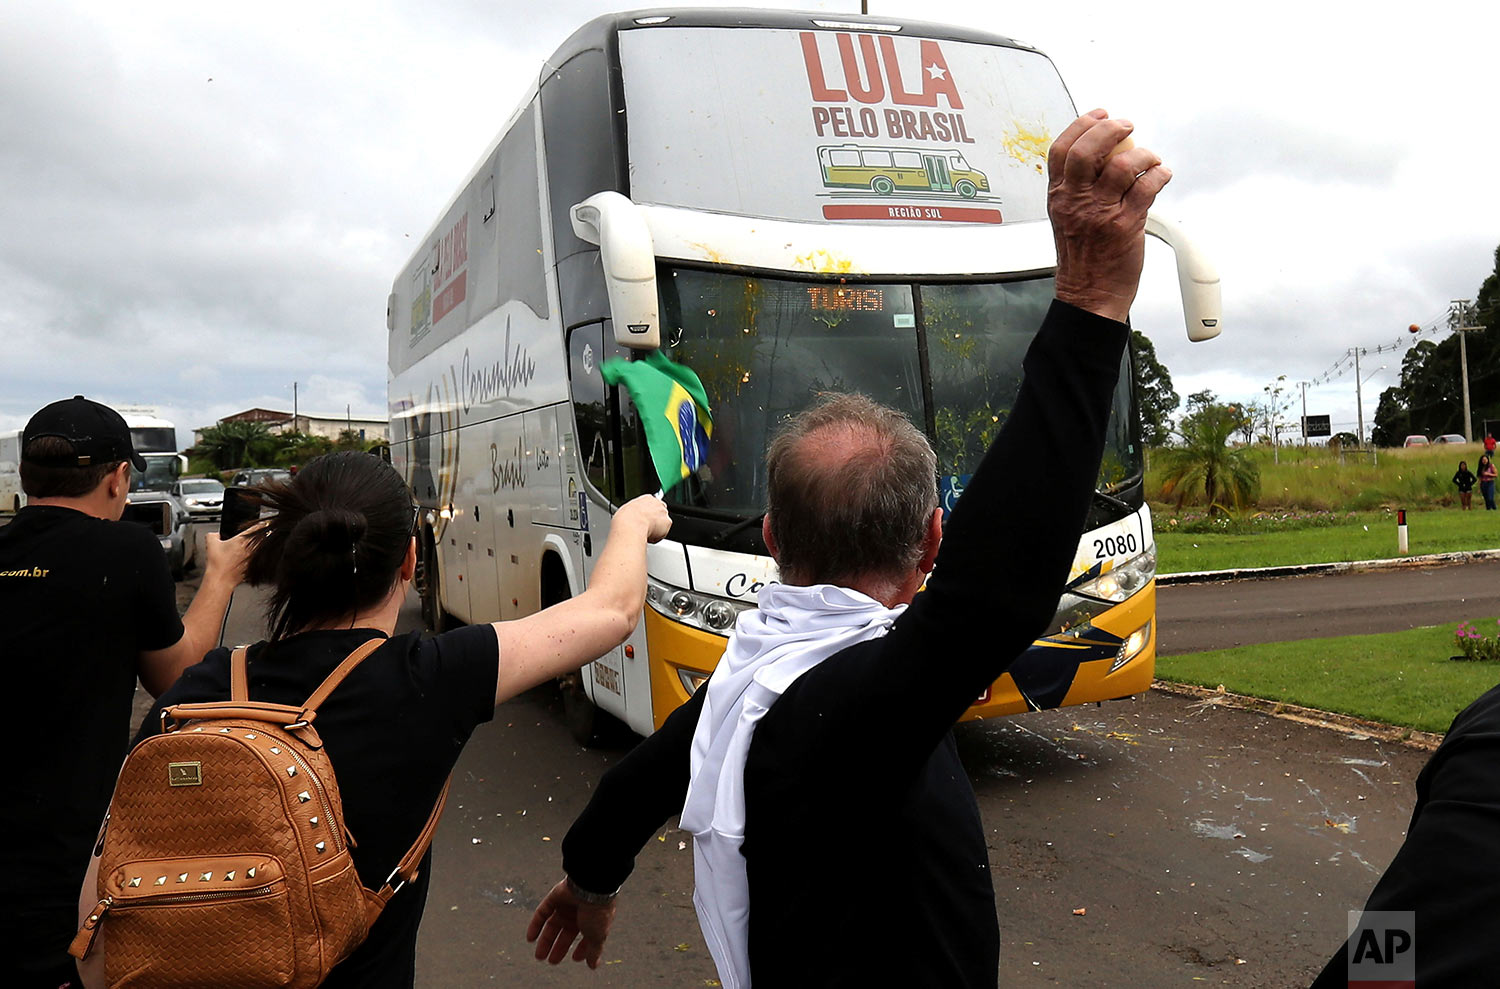 Opponents of Brazil's former President Luiz Inacio Lula da Silva throw eggs at his caravan arriving to Sao Miguel do Oeste in southern Brazil, March 25, 2018. The former leader is leading polls for October's presidential election but is likely to be barred from running and judges could order him to begin serving his sentence on a corruption conviction. (AP Photo/Eraldo Peres)